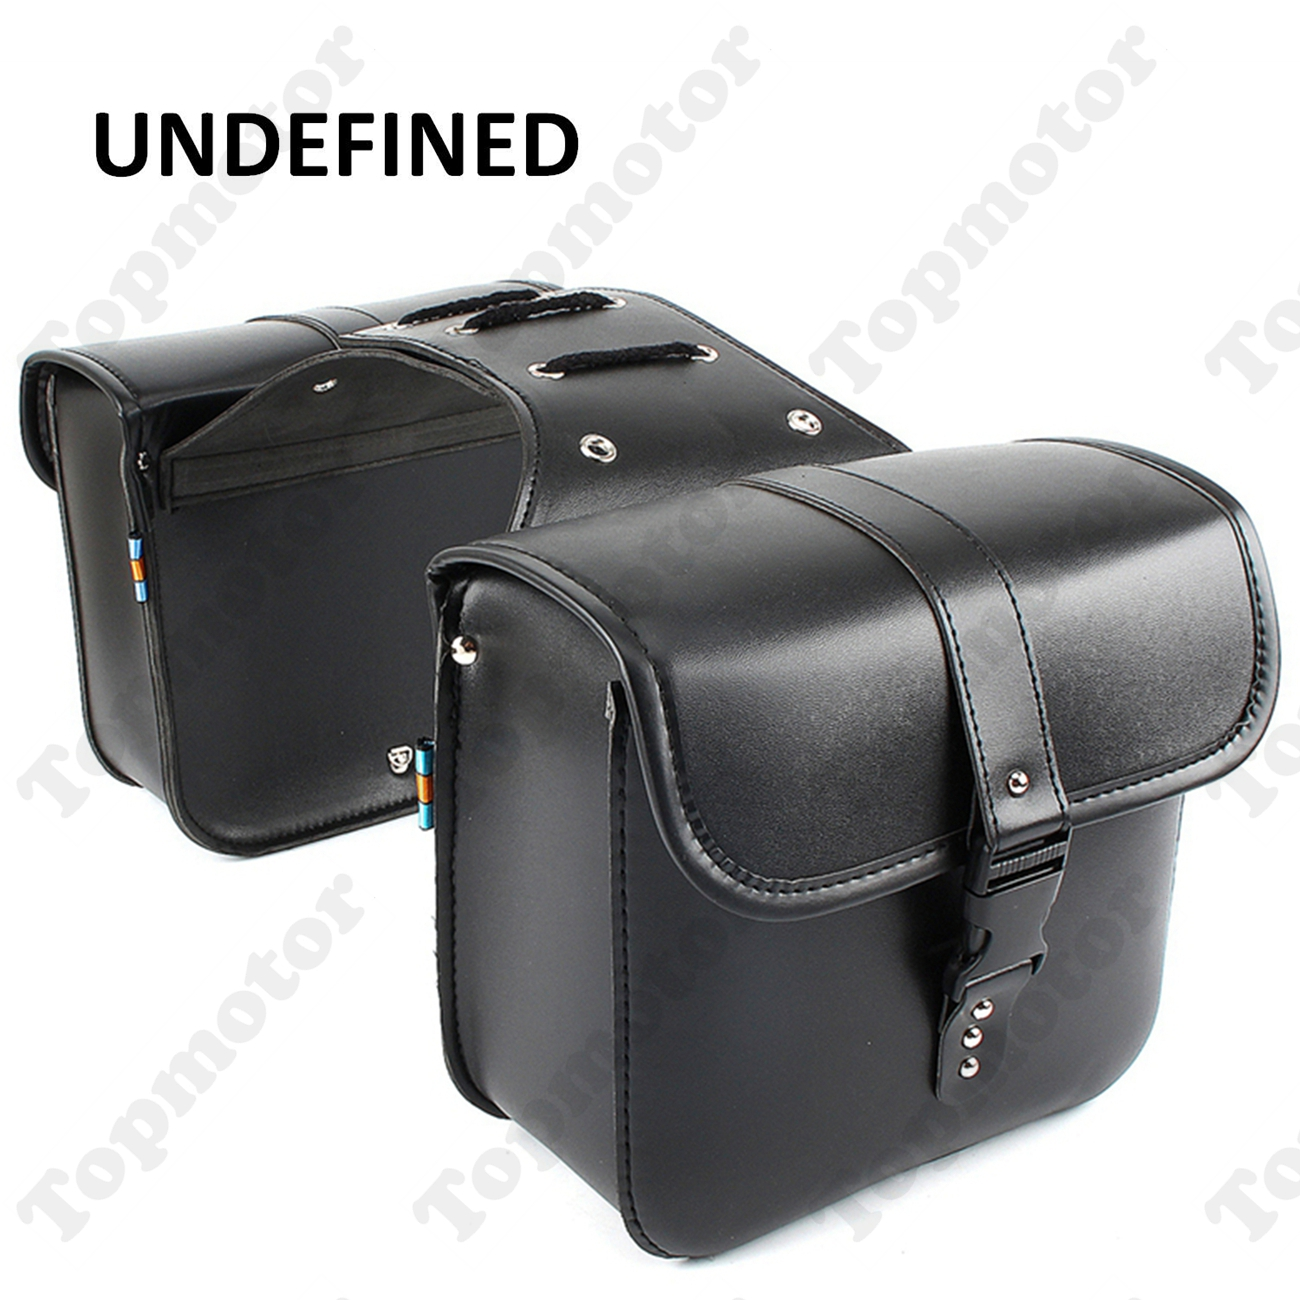 Motorbike Black PU Leather Motorcycle Parts Side Saddle Bags Tool Luggage Pannier Cruiser UNDEFINED